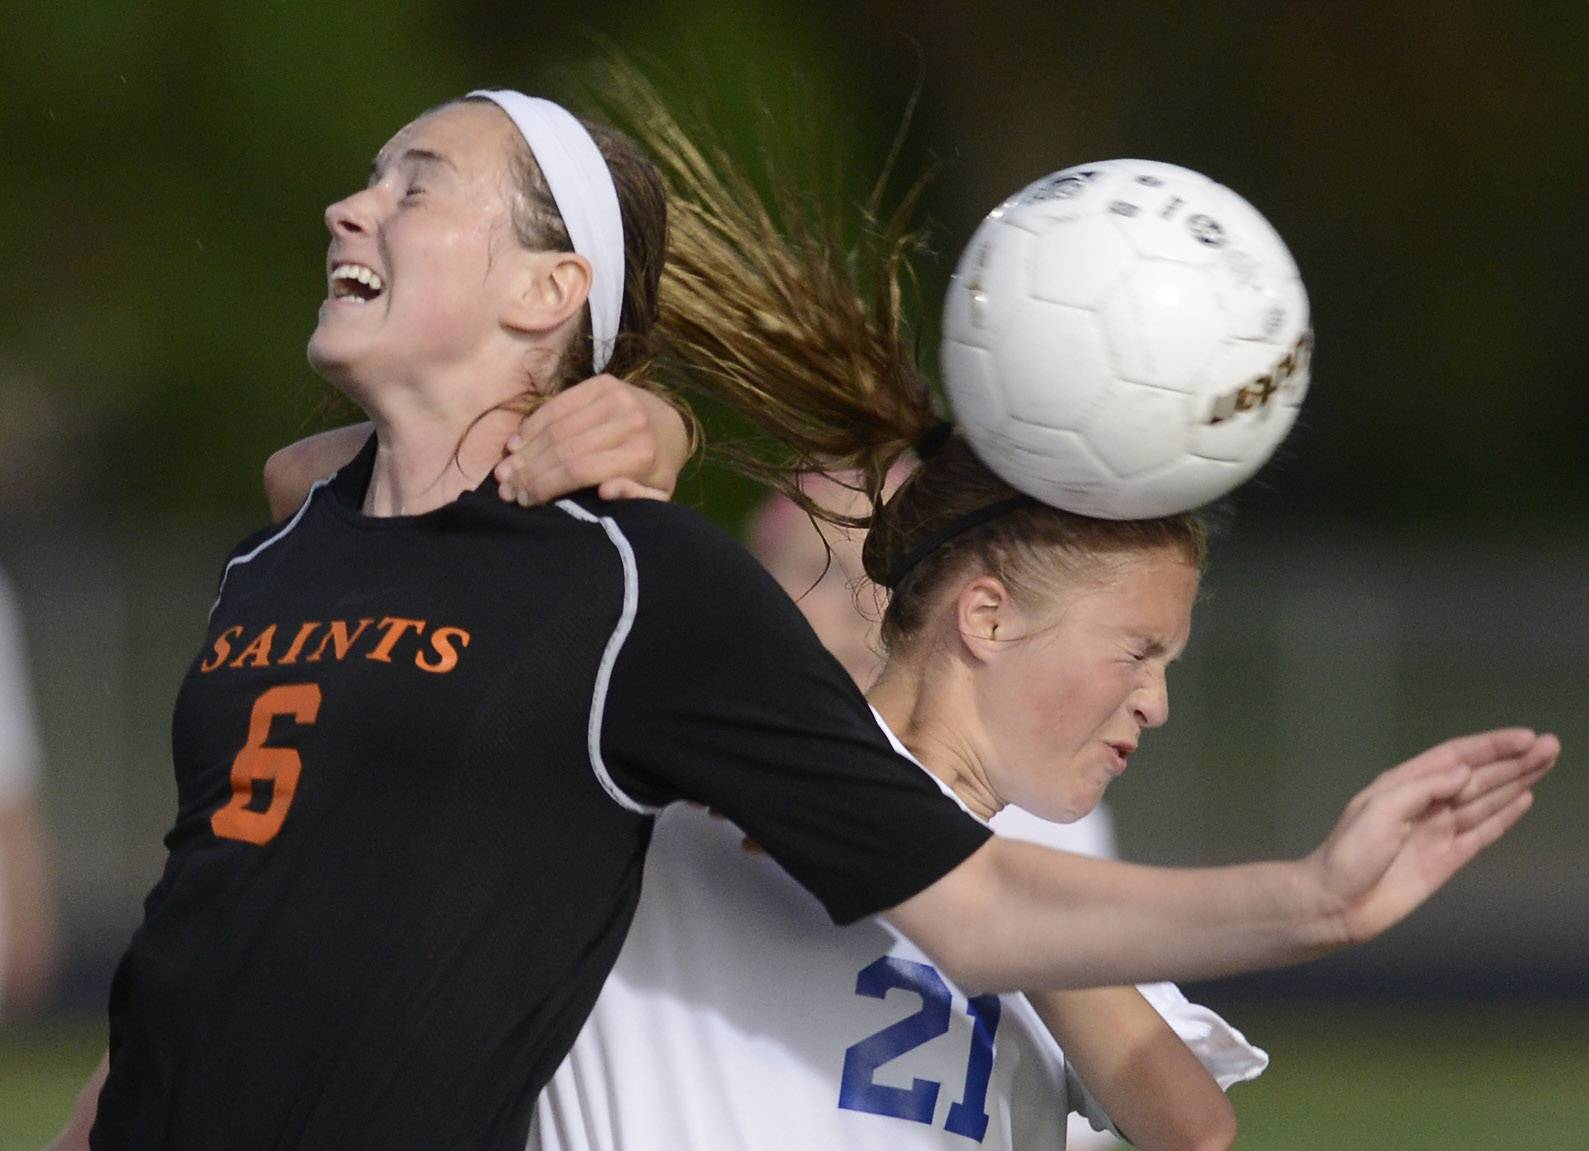 Joe Lewnard/jlewnard@dailyherald.comKelli Santo Paolo, left, of St. Charles East and Amanda Czerniak of St. Charles North become entangled as they leap for a header during the Conant sectional semifinal in Hoffman Estates Tuesday.